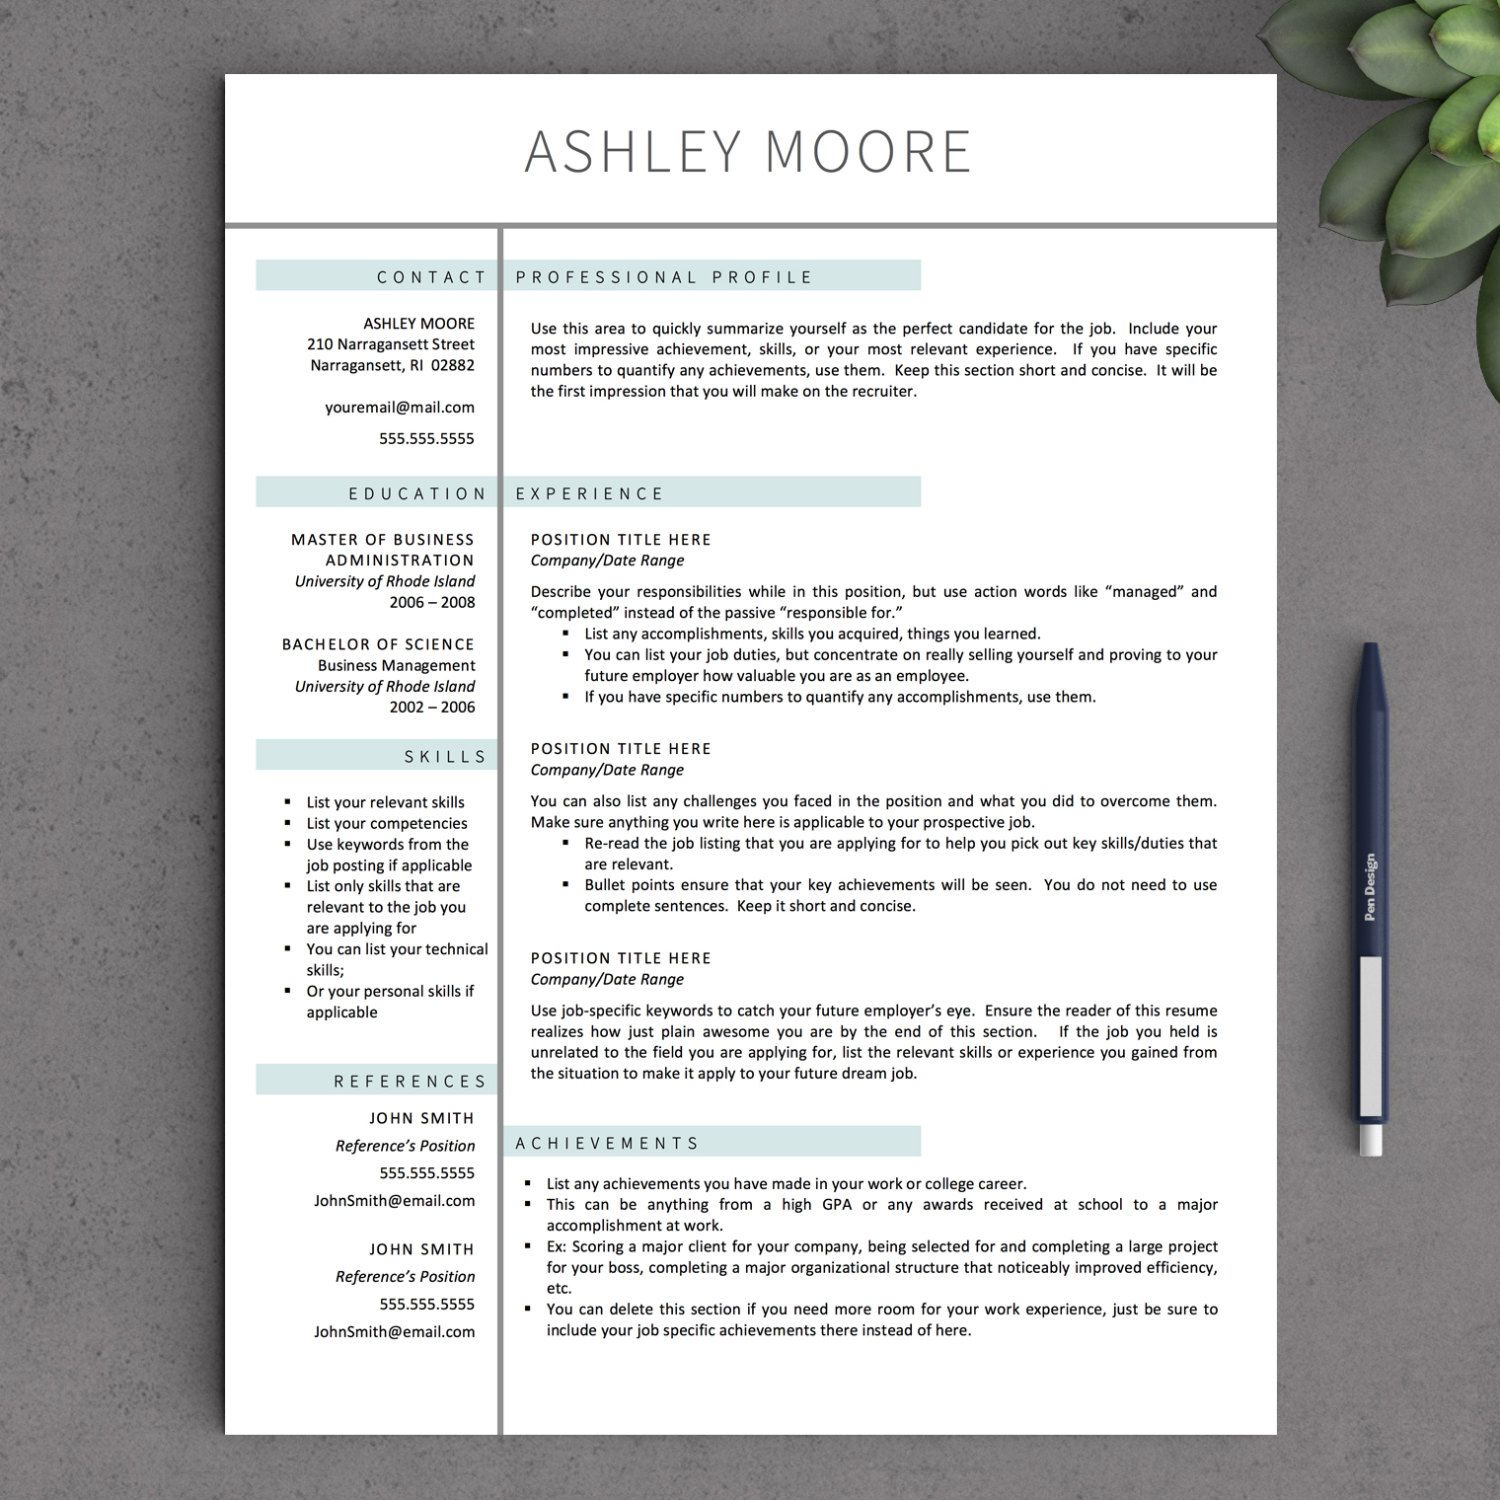 apple pages resume template download apple pages resume template download apple - Mac Pages Resume Templates